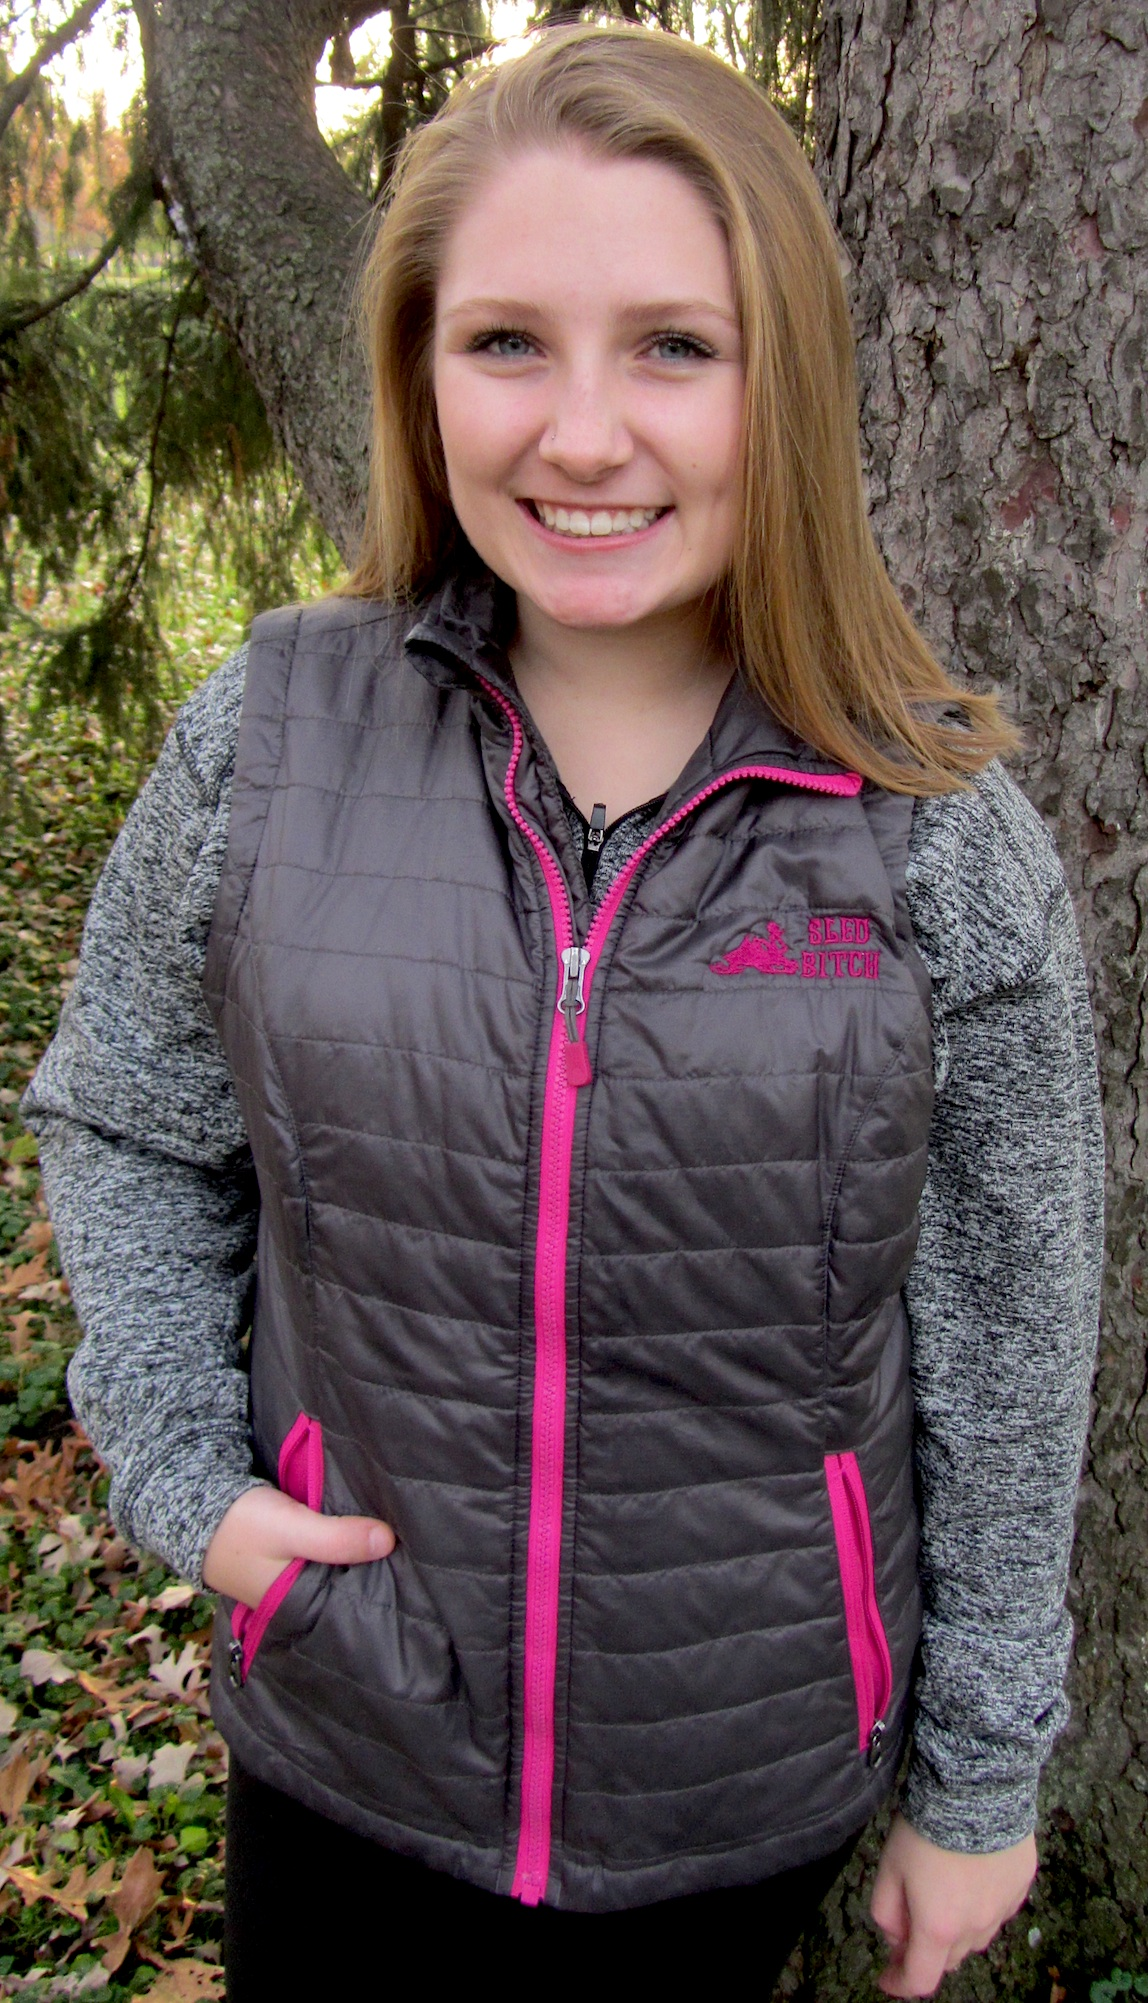 Quilted Women's Vest - Charcoal/Pink Sled Bitch